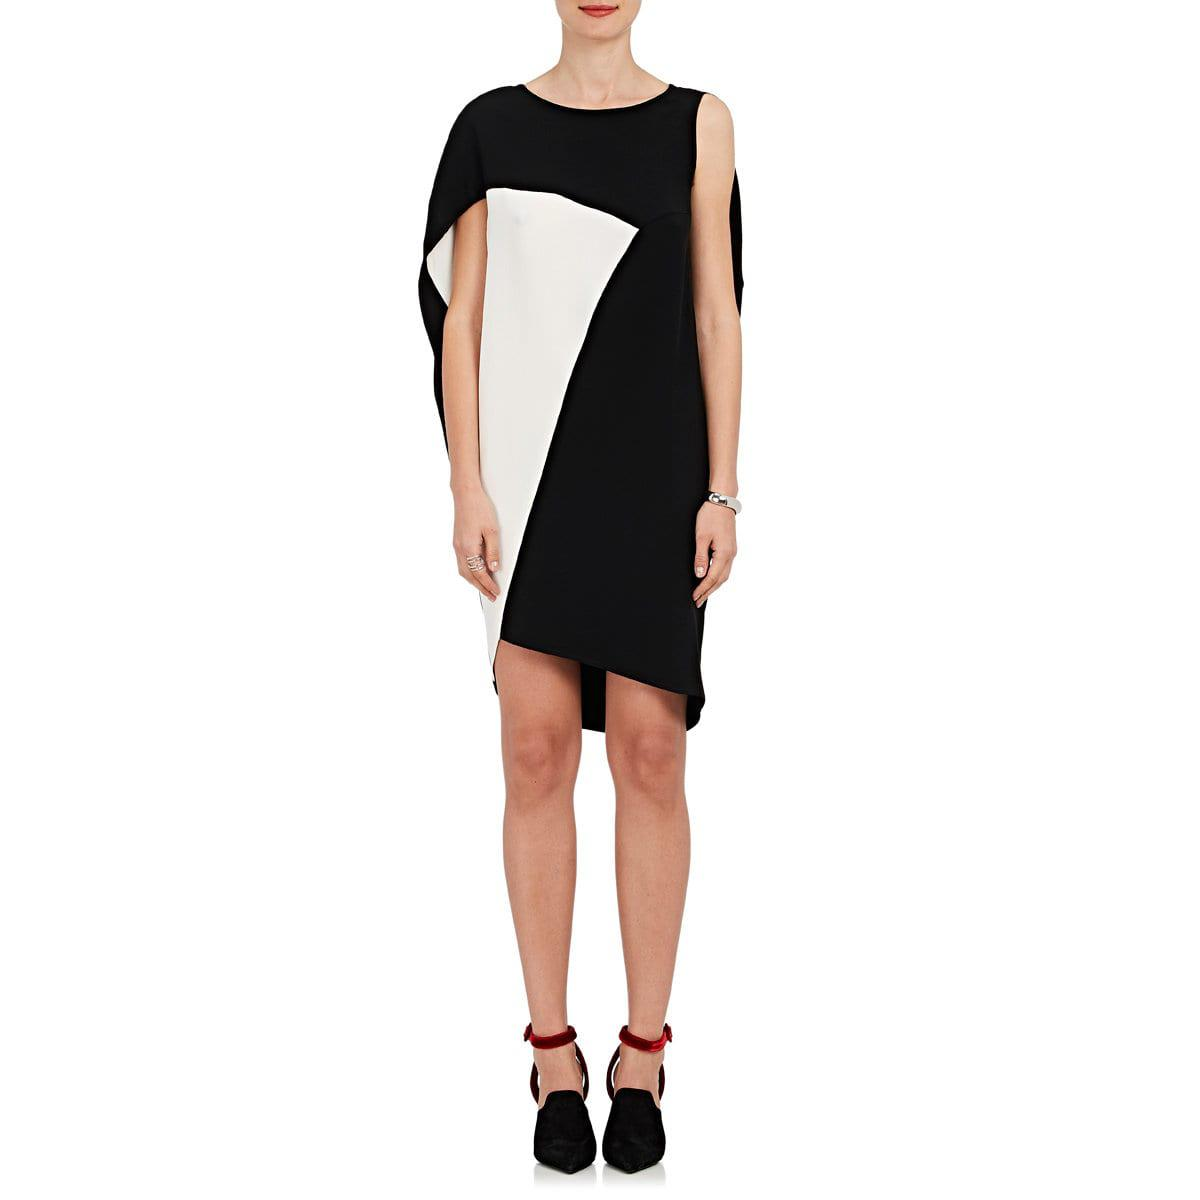 Womens Libe Silk Crepe Belted Dress Zero + Maria Cornejo Big Sale Free Shipping Footaction Cheap Sale Authentic Free Shipping Fashionable Bn5EZfOt1V